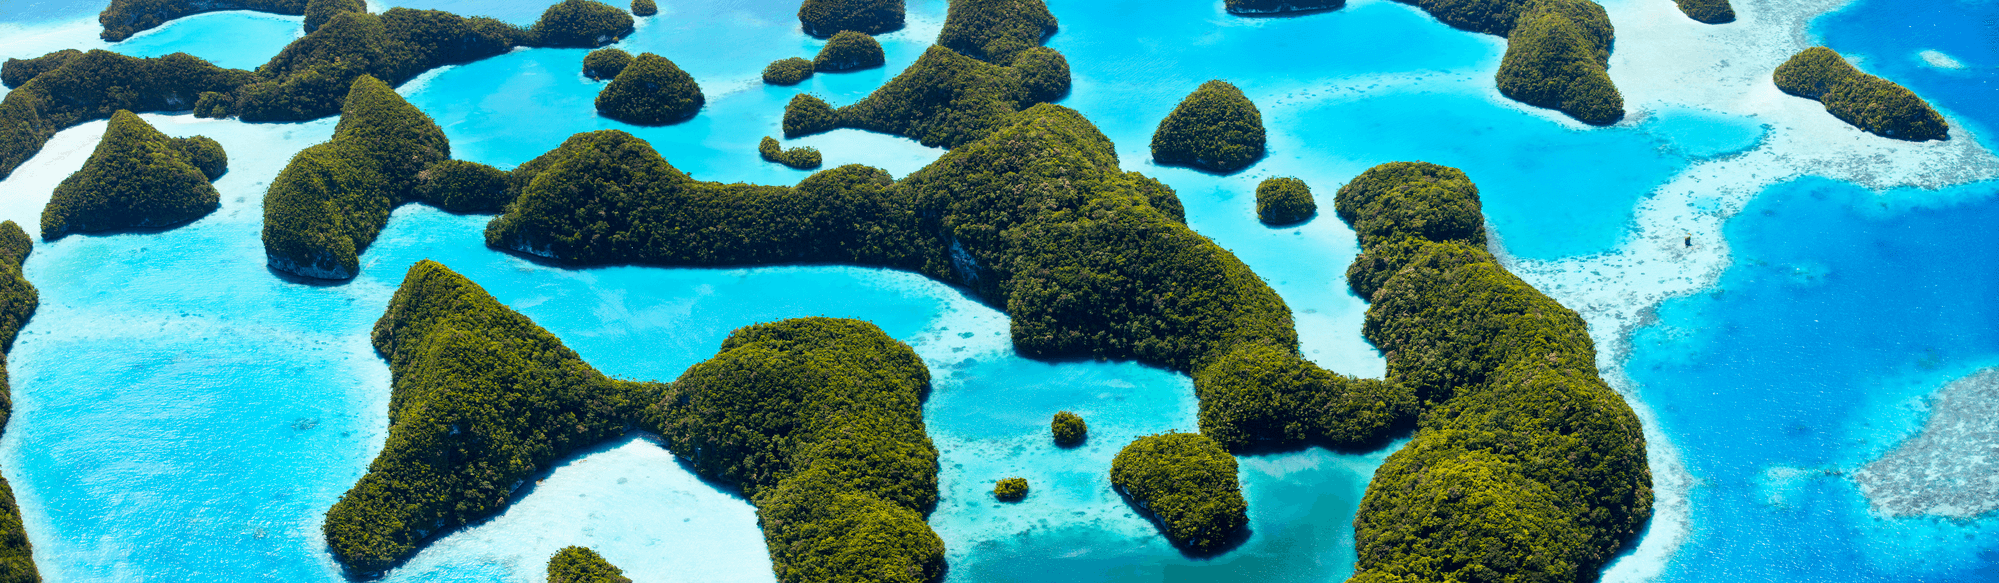 palau islands and reefs view